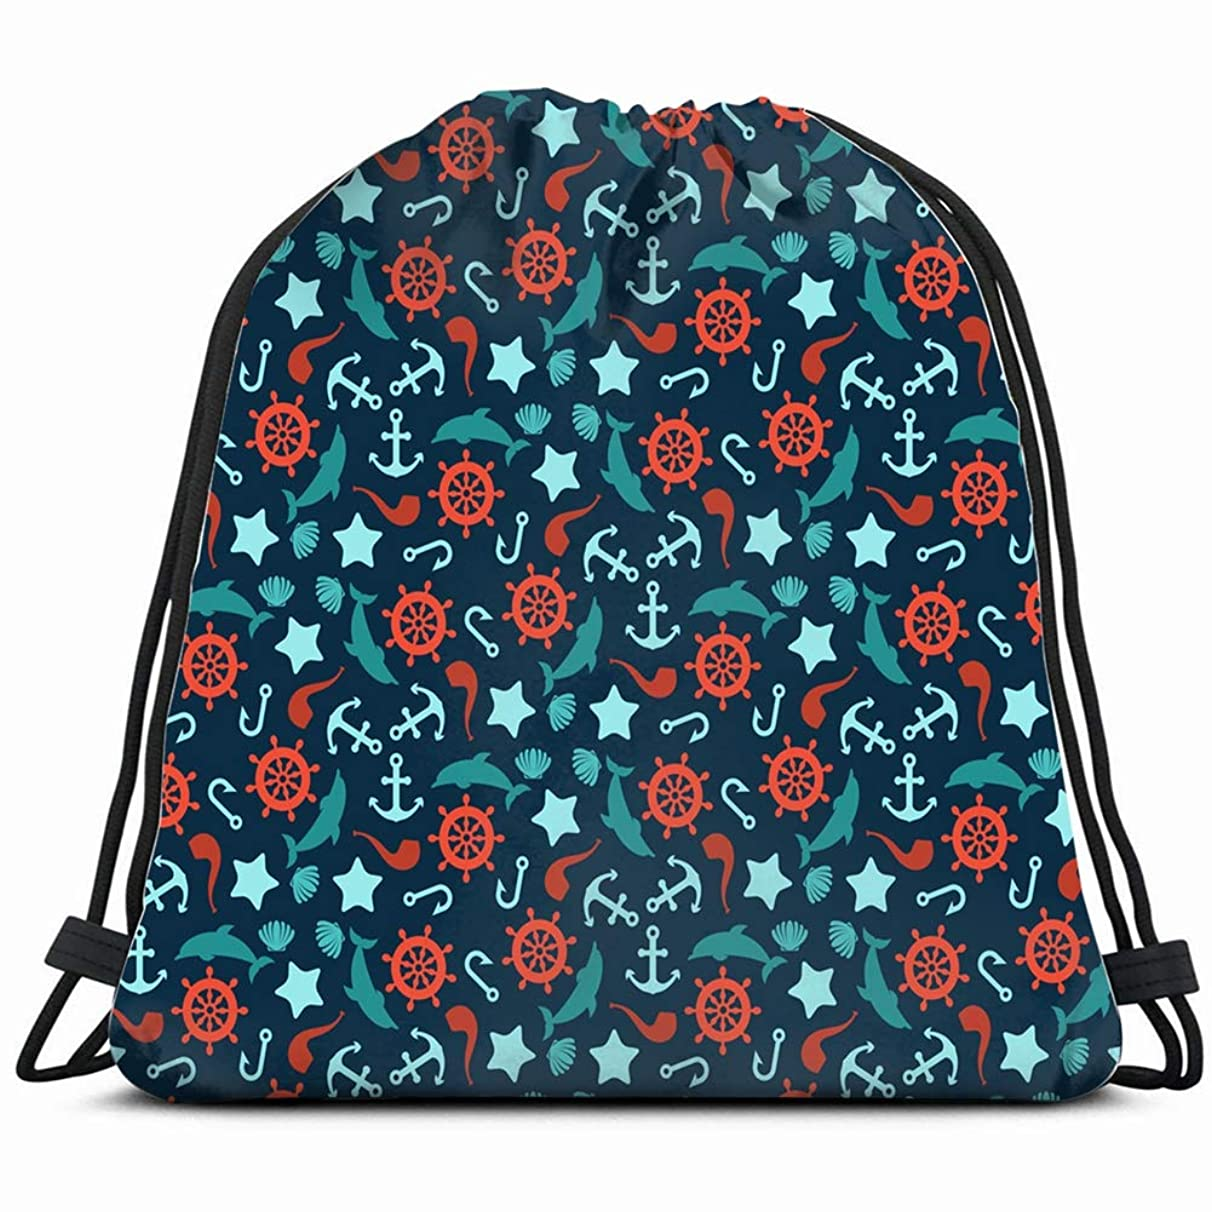 anchor wheel dolphins signs symbols Drawstring Backpack Gym Sack Lightweight Bag Water Resistant Gym Backpack for Women&Men for Sports,Travelling,Hiking,Camping,Shopping Yoga